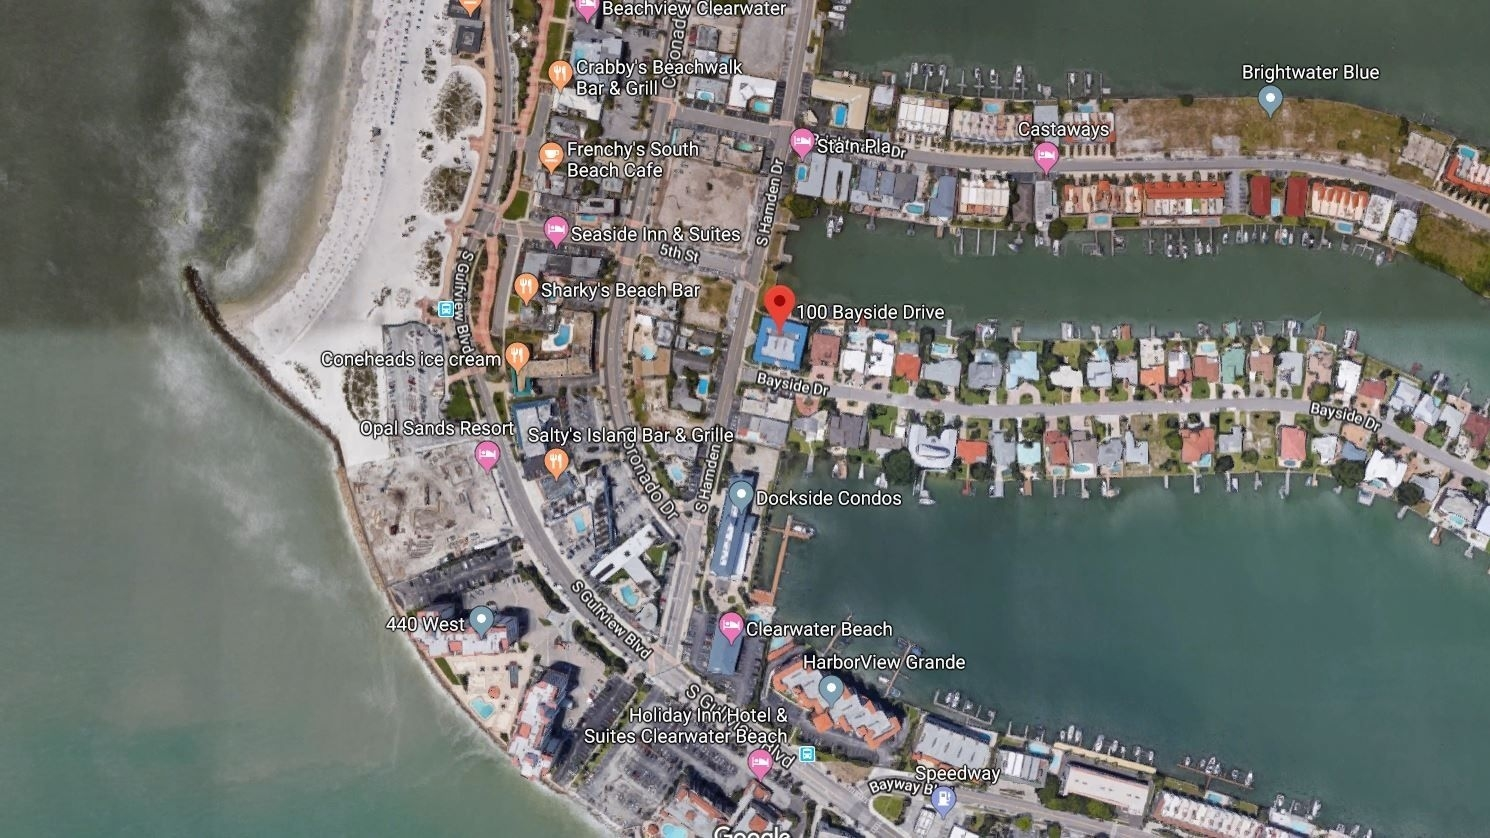 Sun West Palms | St Pete Clearwater Vacation Rentals Key West Calendar Of Events June 2021